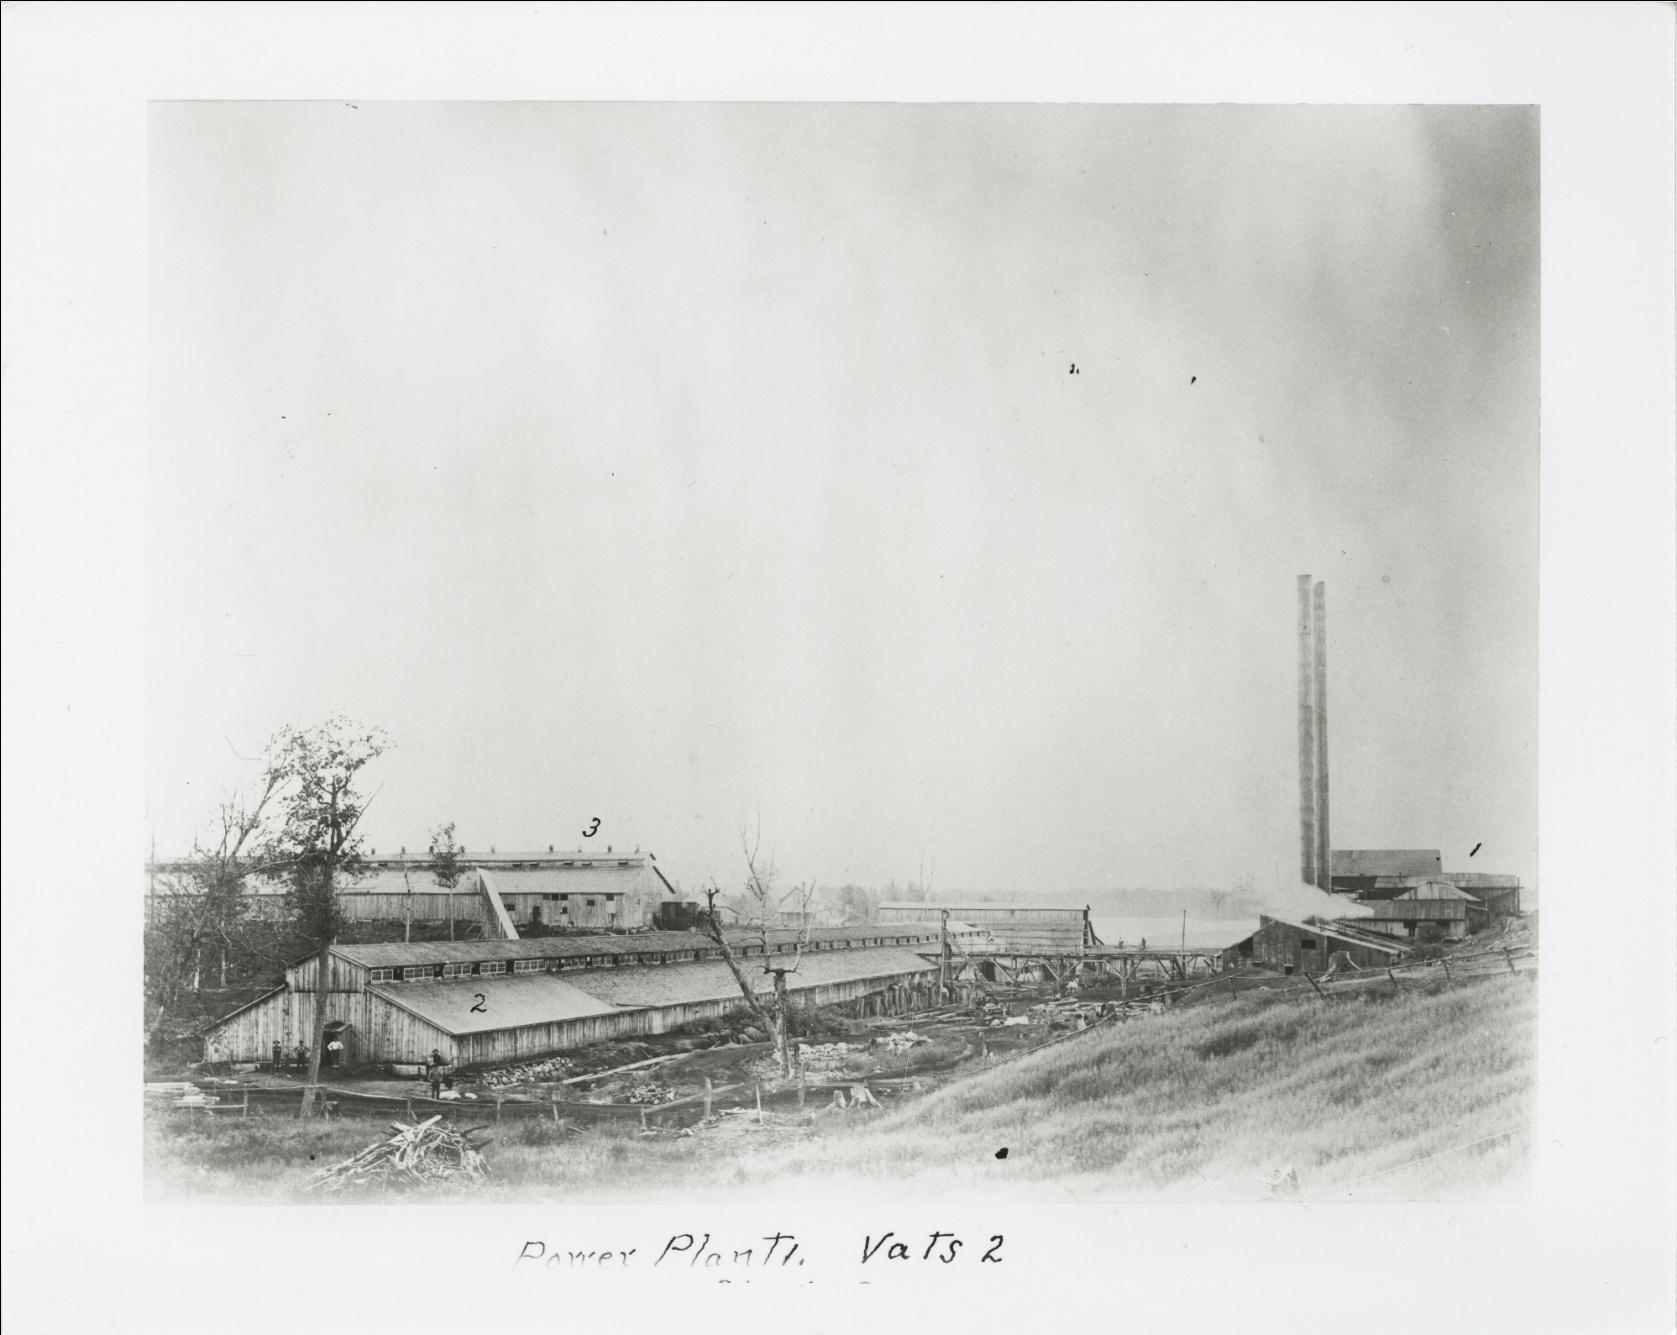 C:\Users\Robert P. Rusch\Desktop\II. RLHSoc\Documents & Photos-Scanned\Rib Lake History 10700-10799\10789-P. Tannery c. 1900, view from north, 1) Power plant, 2.jpg